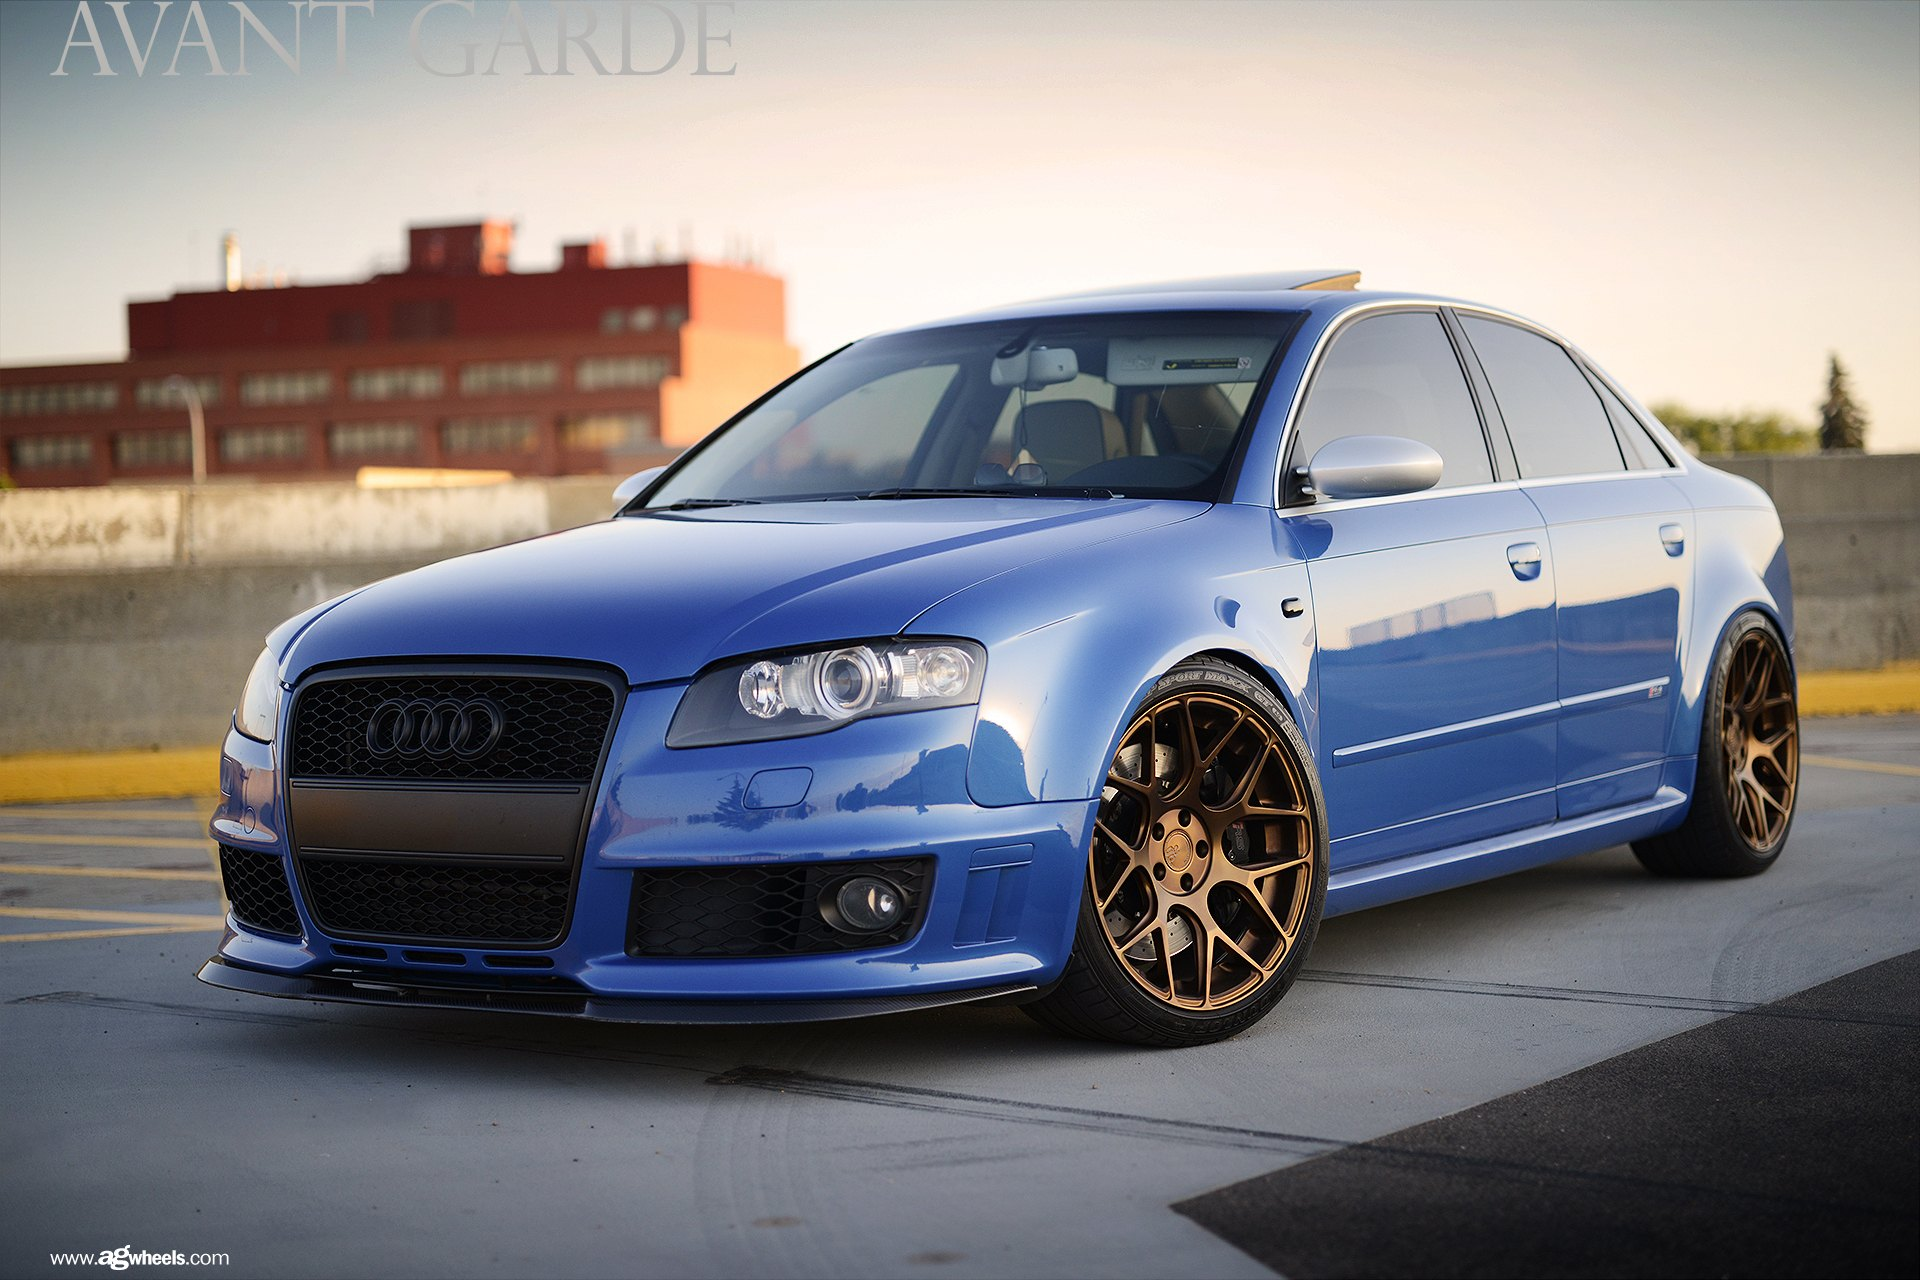 royal look of custom blue audi s4 with blacked out grille. Black Bedroom Furniture Sets. Home Design Ideas